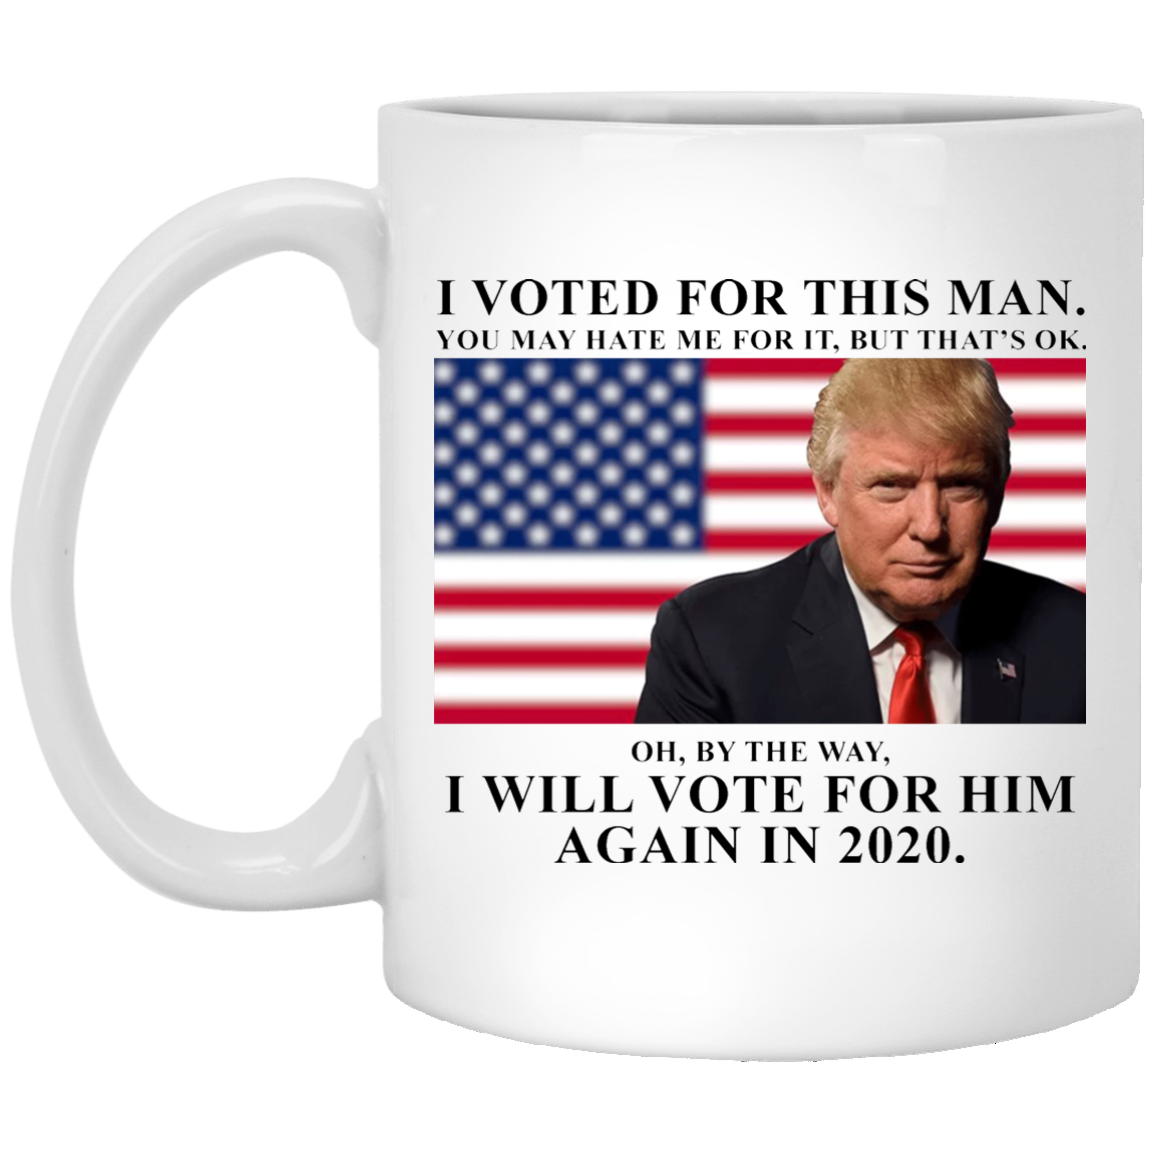 image 2 - I voted for this man and will vote for him again in 2020 mug